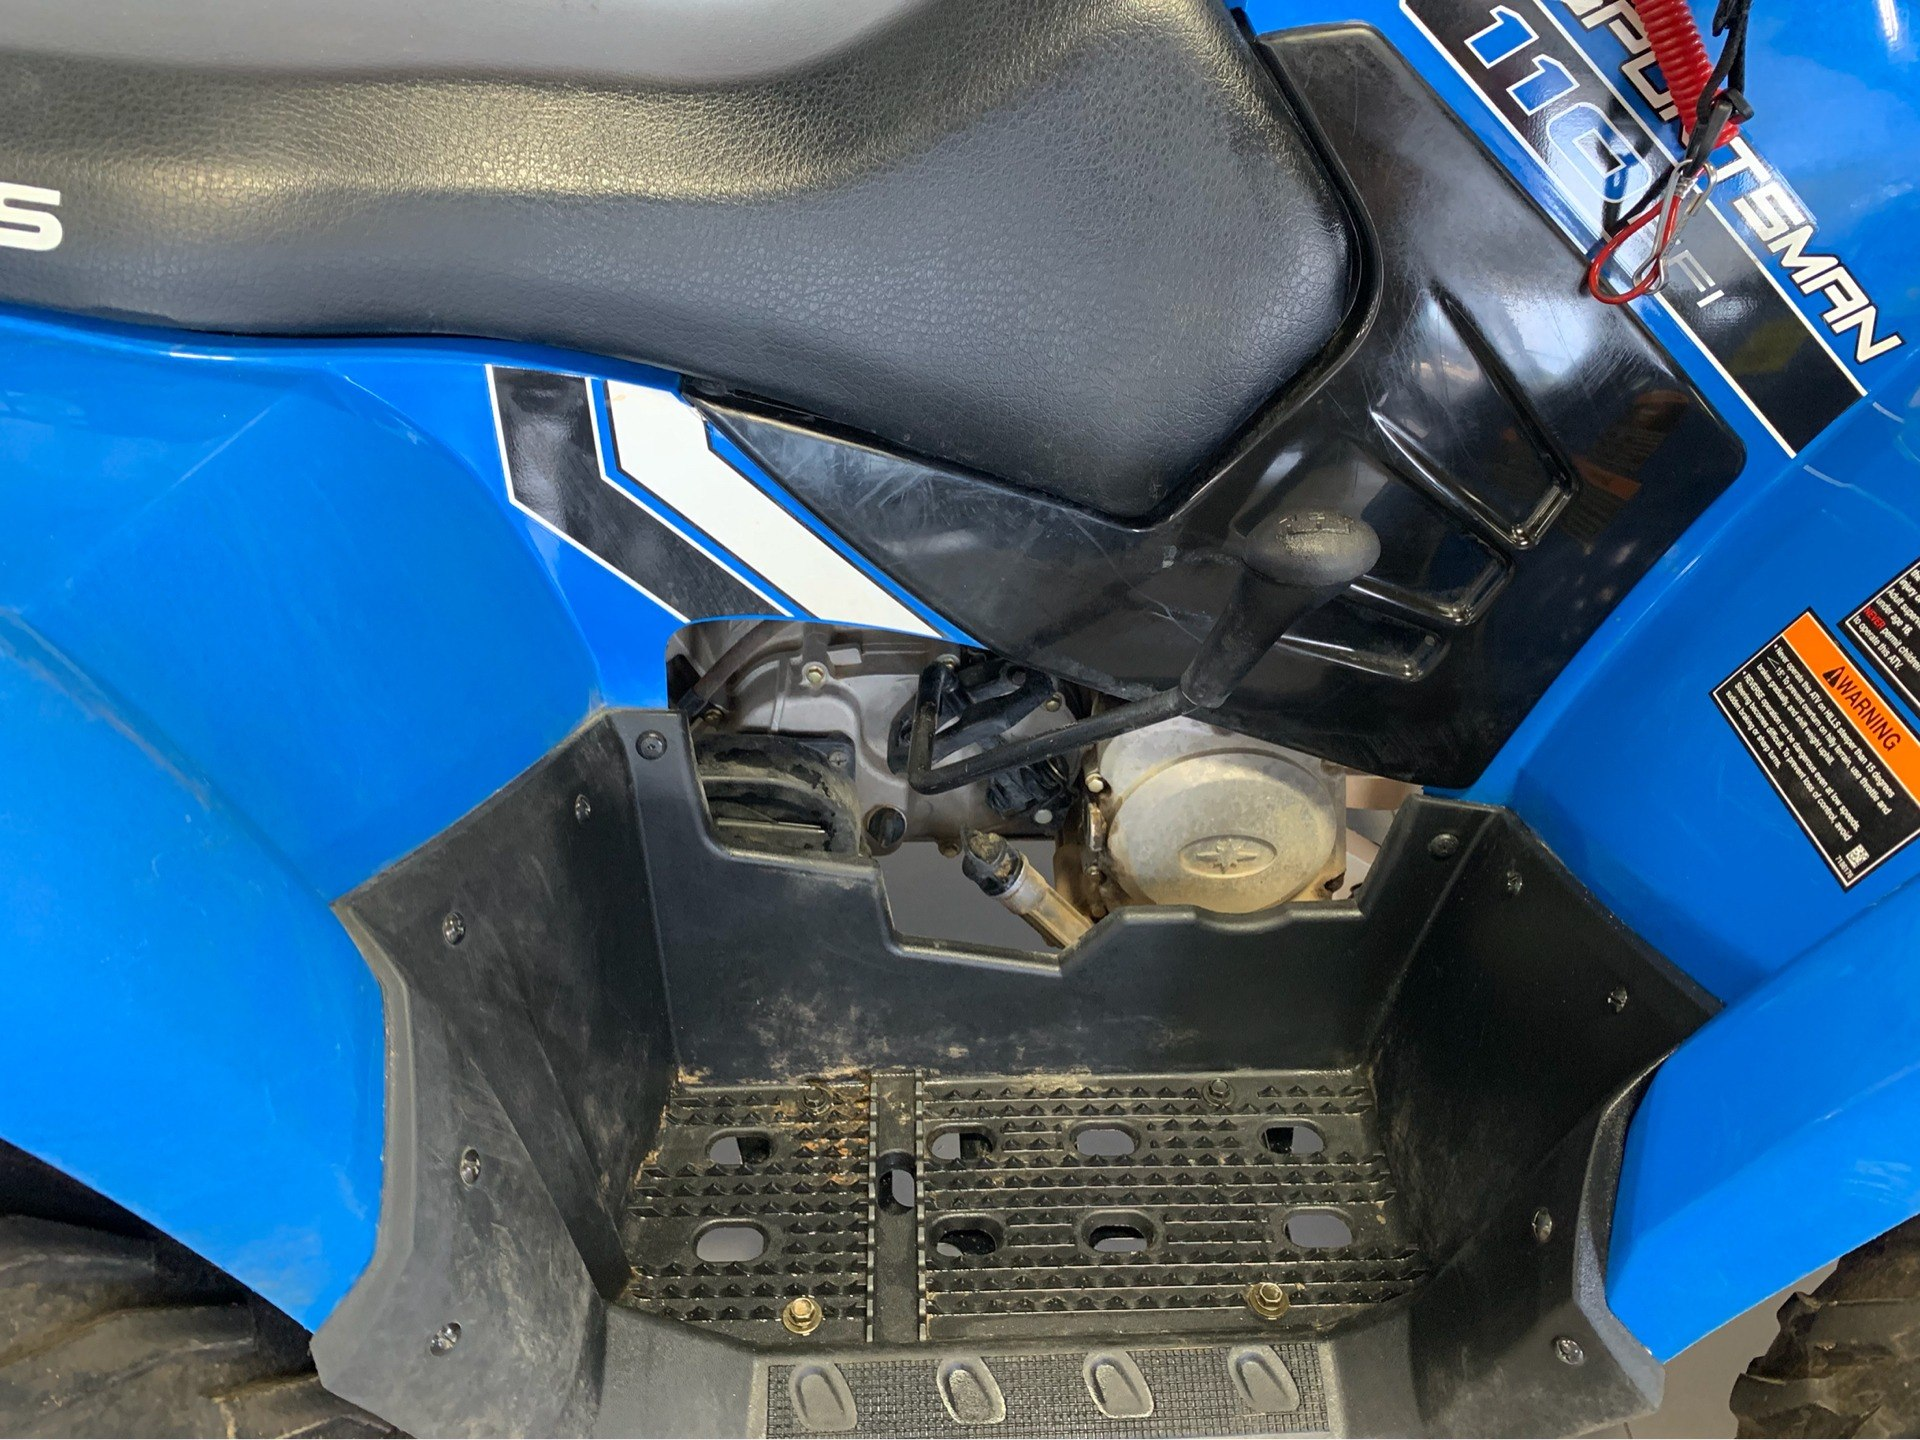 2019 Polaris Sportsman 110 EFI in Springfield, Missouri - Photo 13